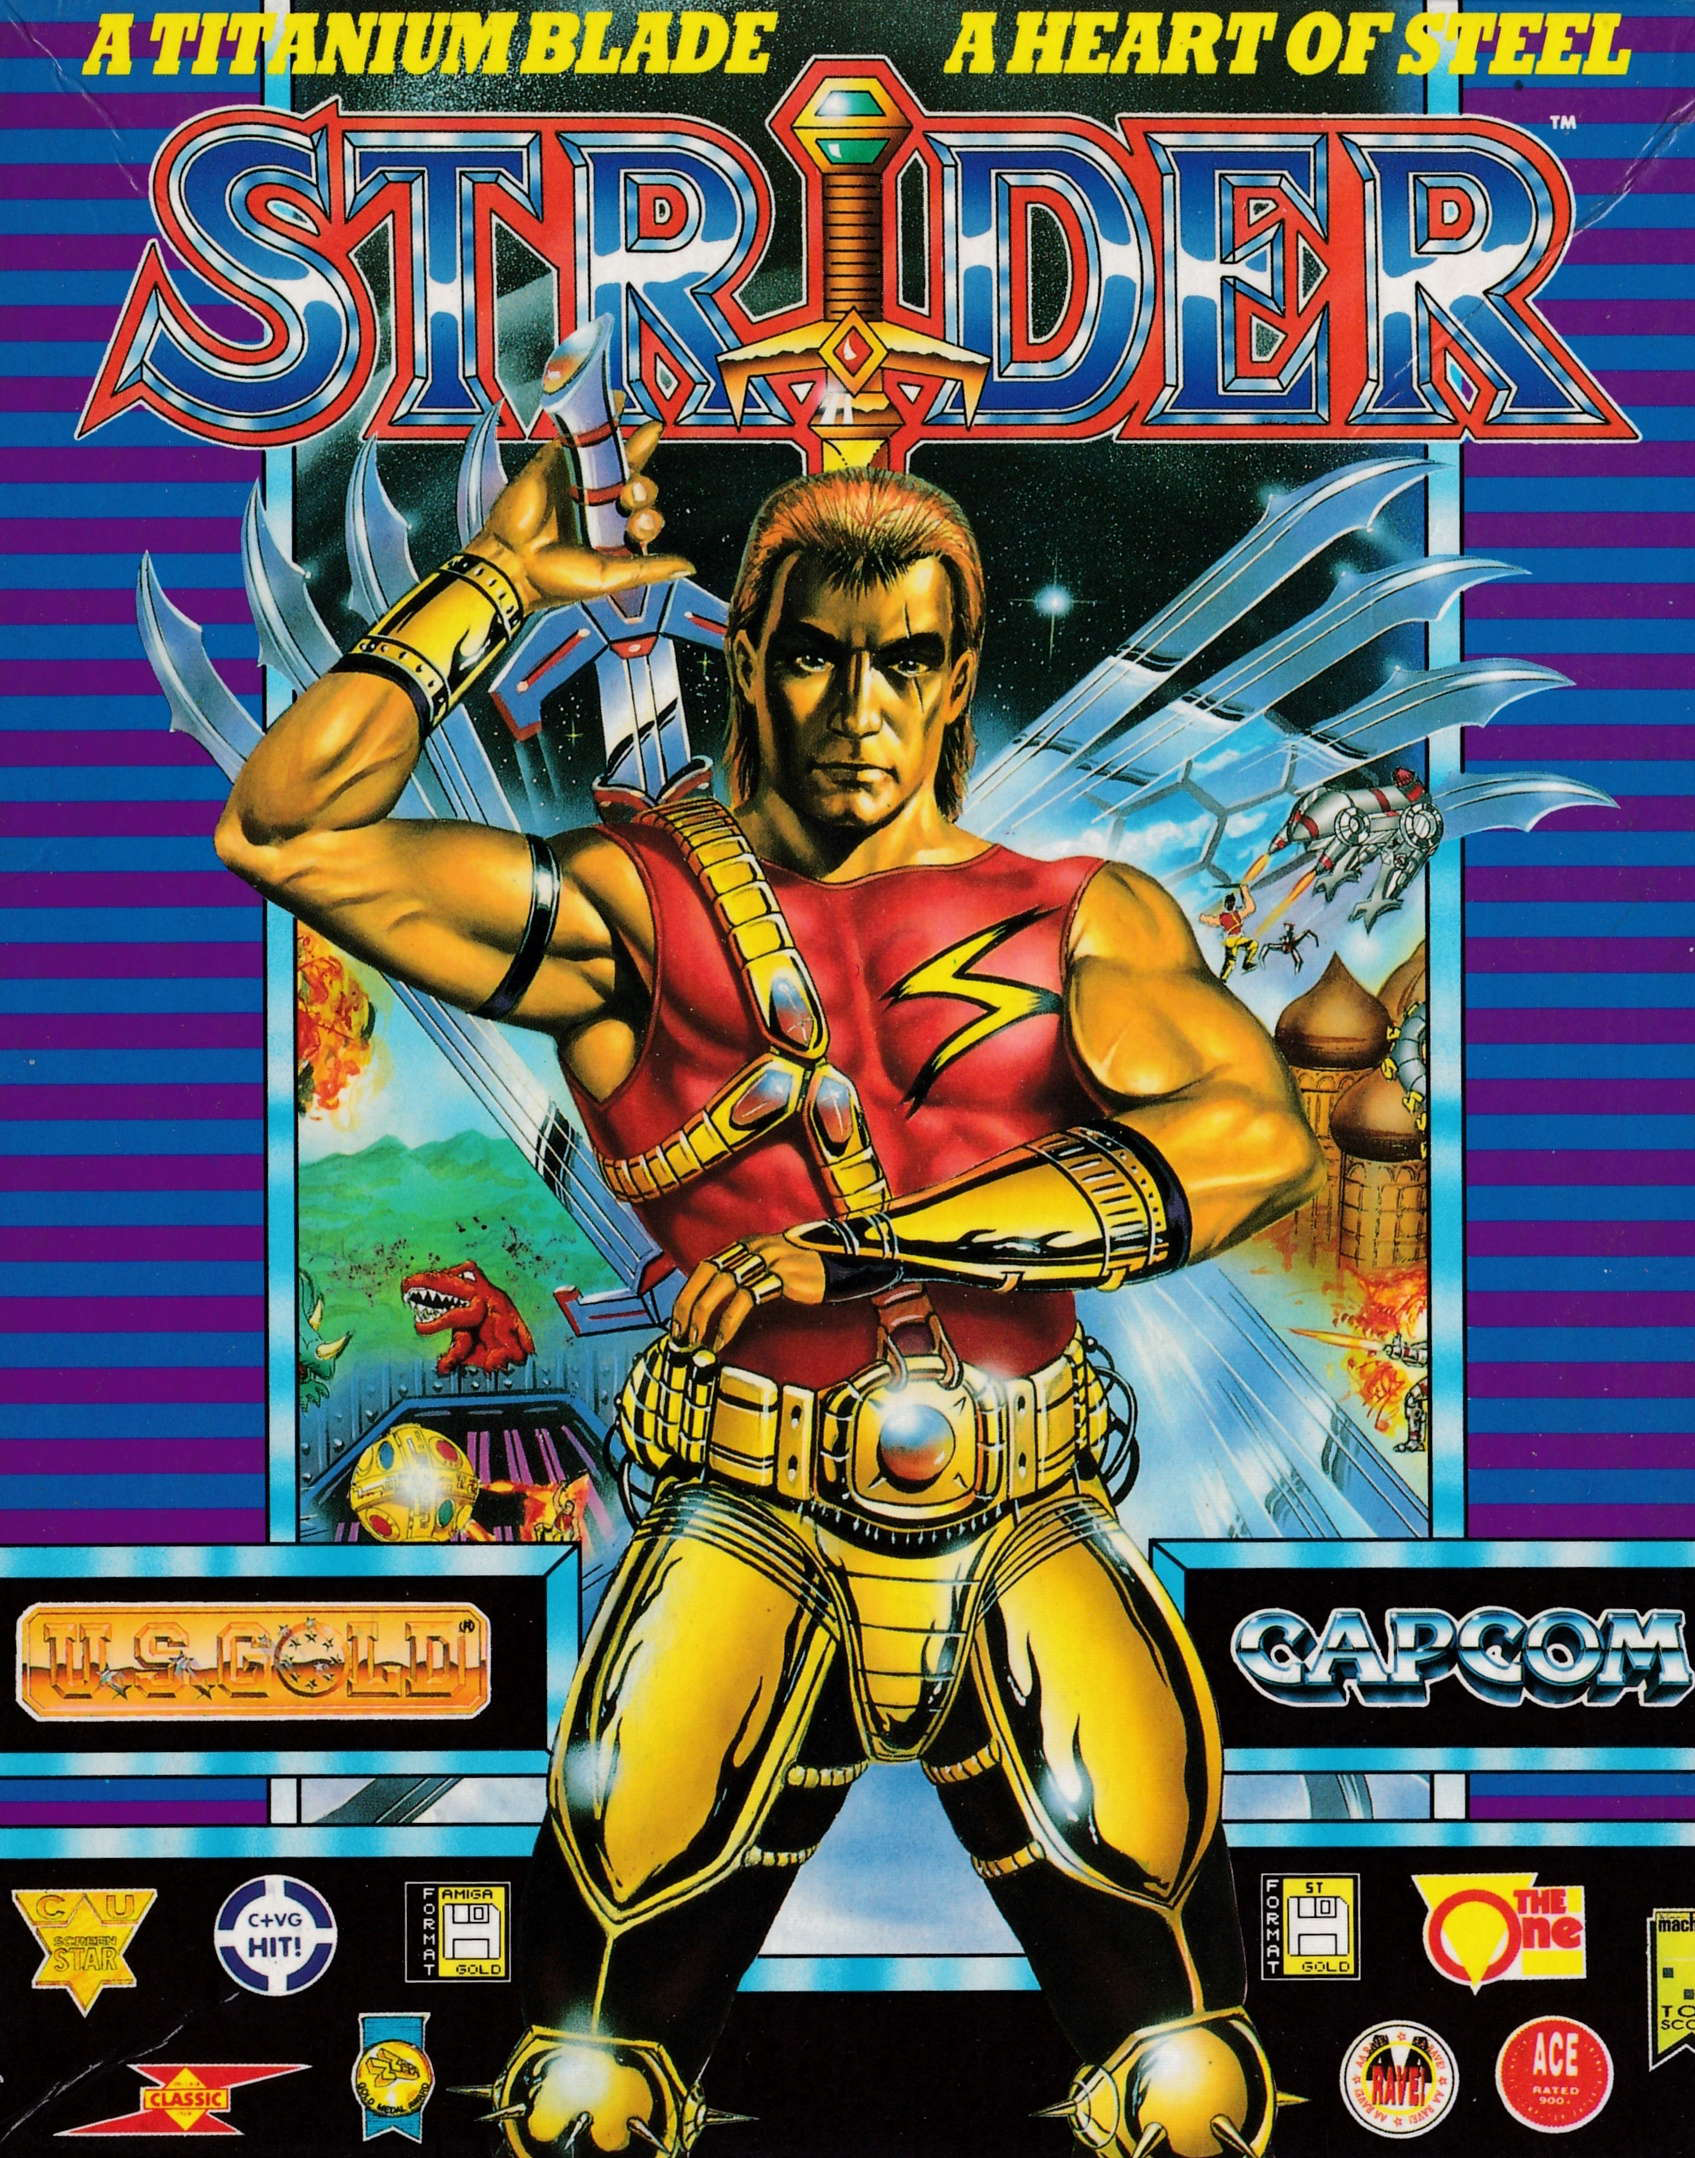 cover of the Amstrad CPC game Strider  by GameBase CPC